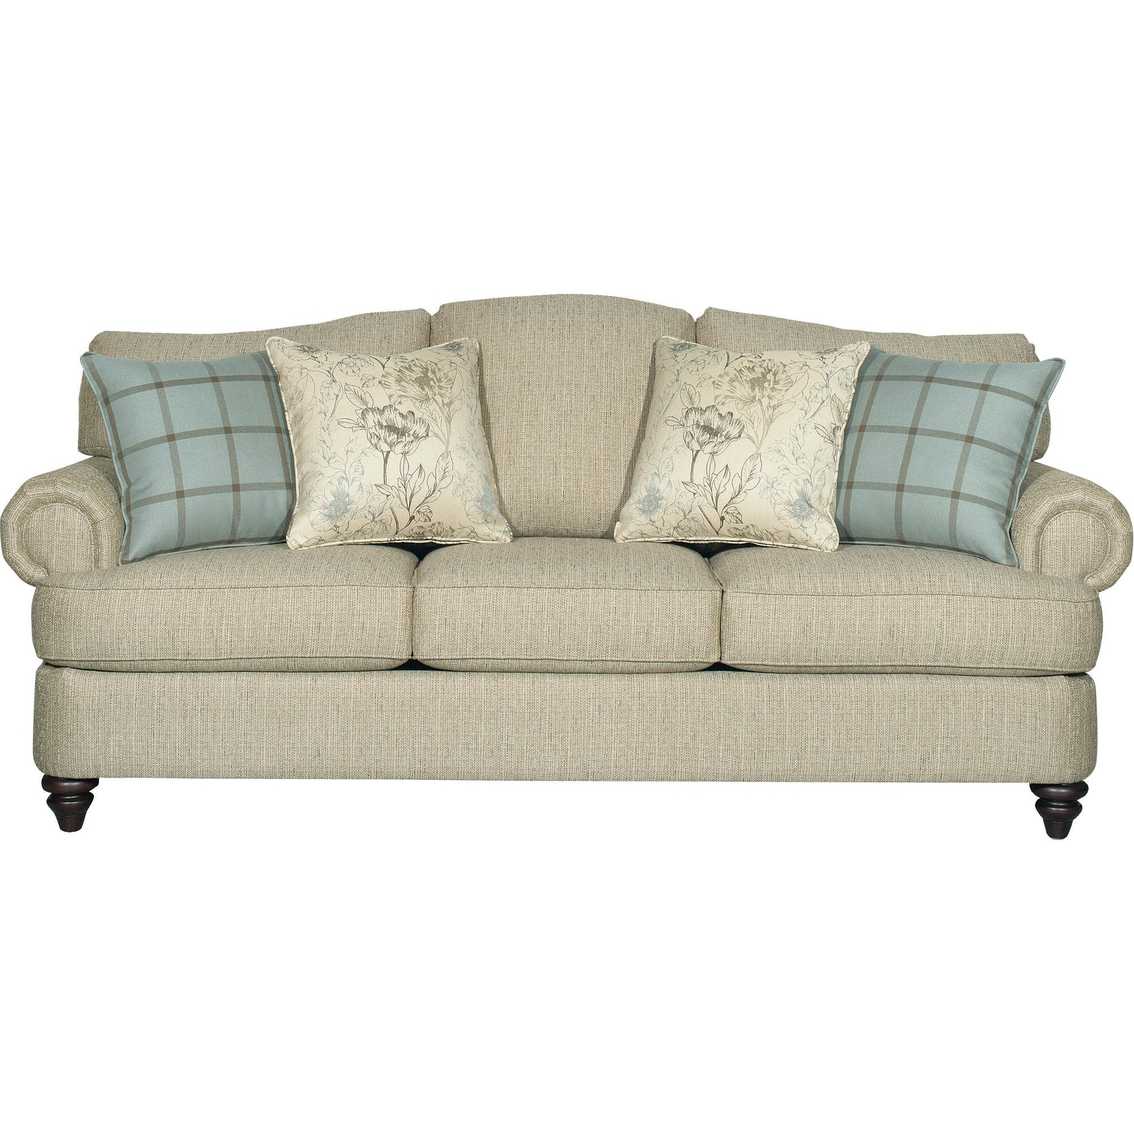 Bassett Xpress2u Barclay Sofa Sofas Couches Home